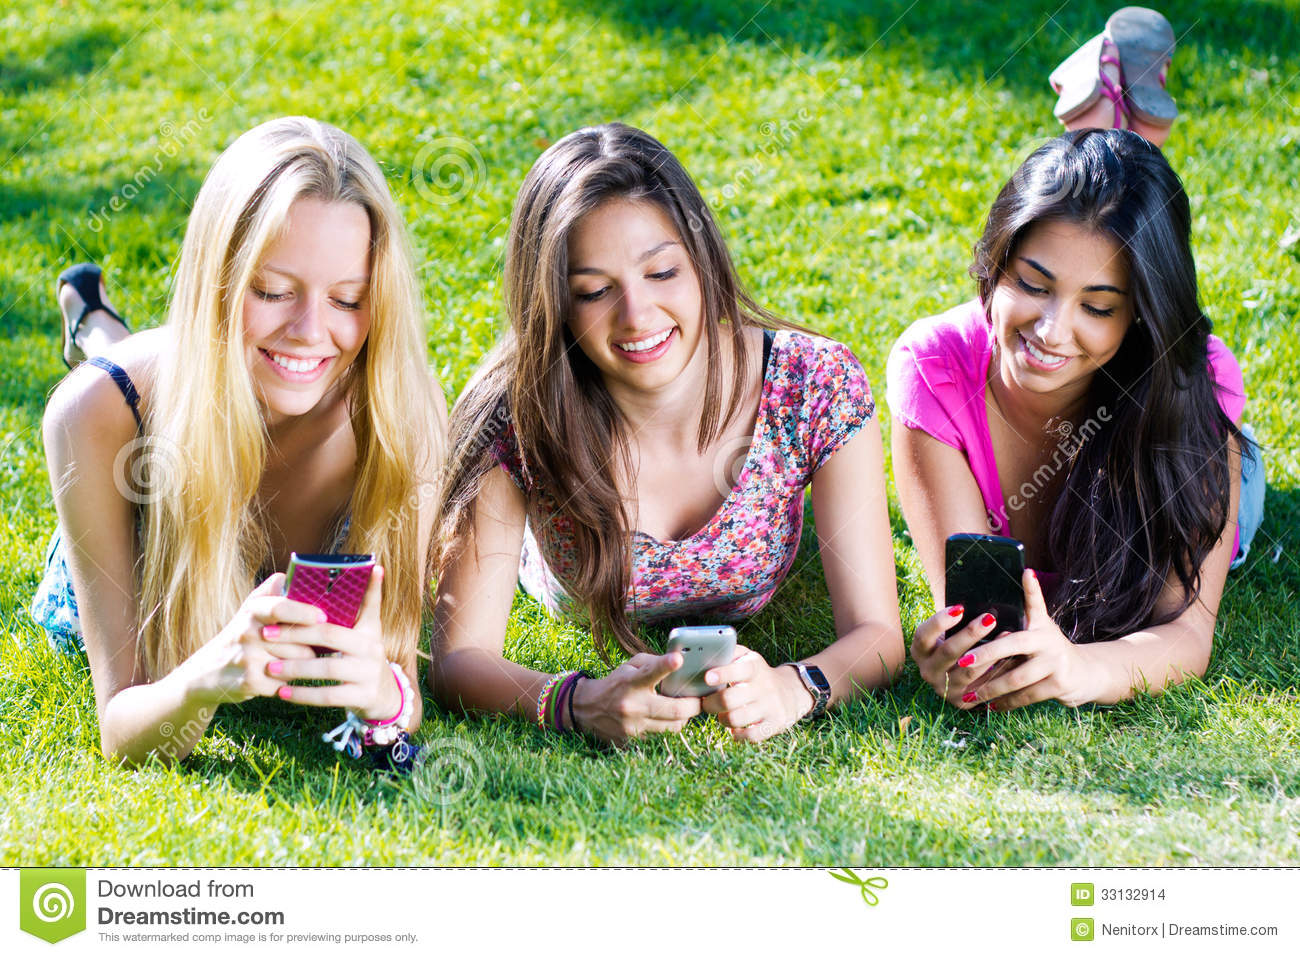 Girls for chatting